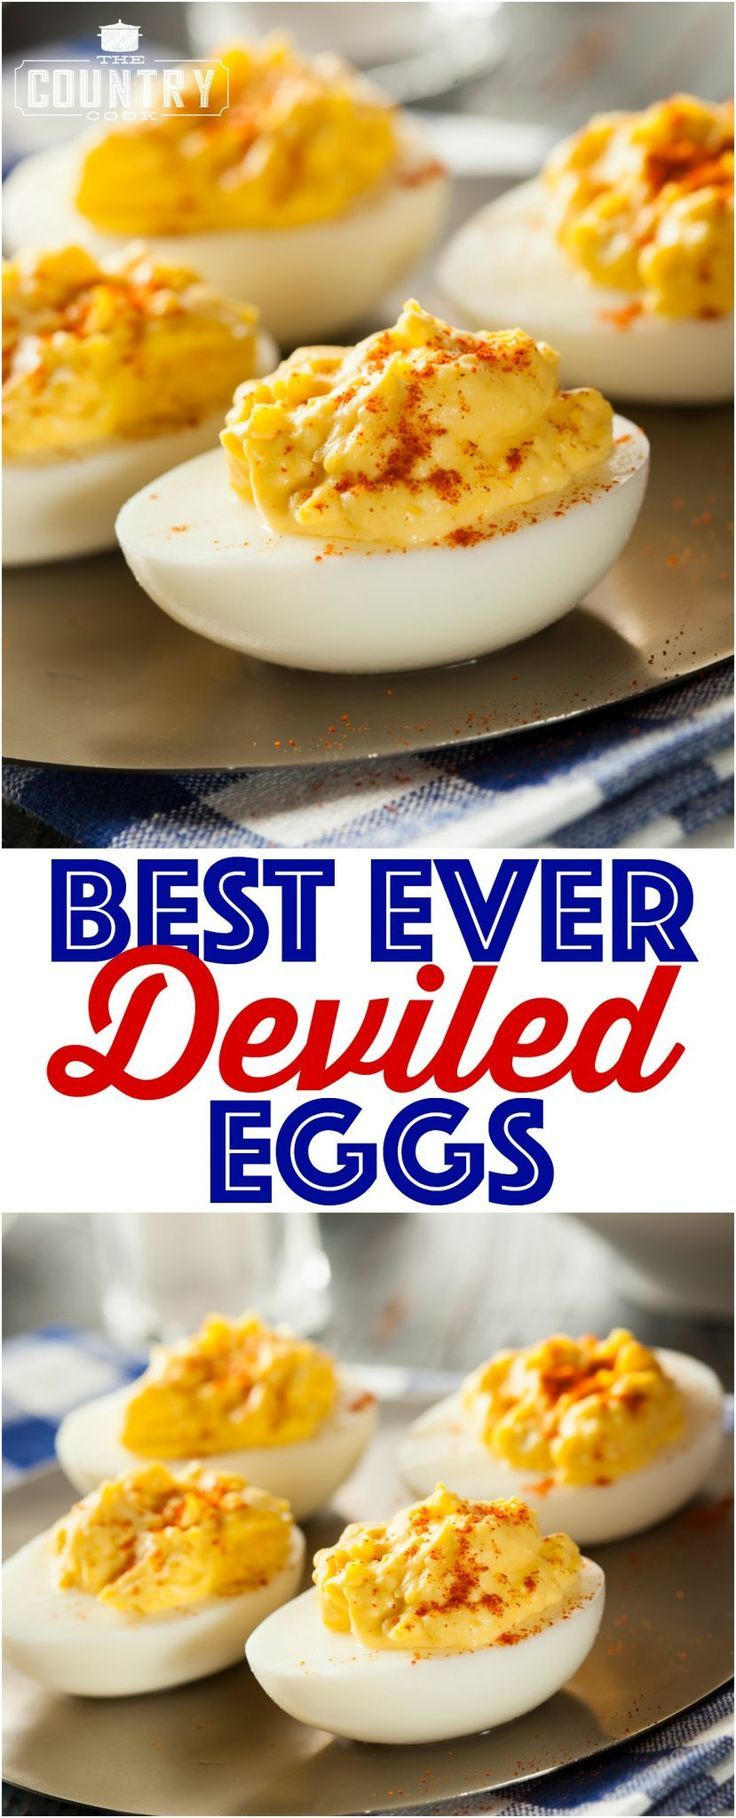 THE BEST EVER CLASSIC DEVILED EGGS (+Video) #deviledeggs